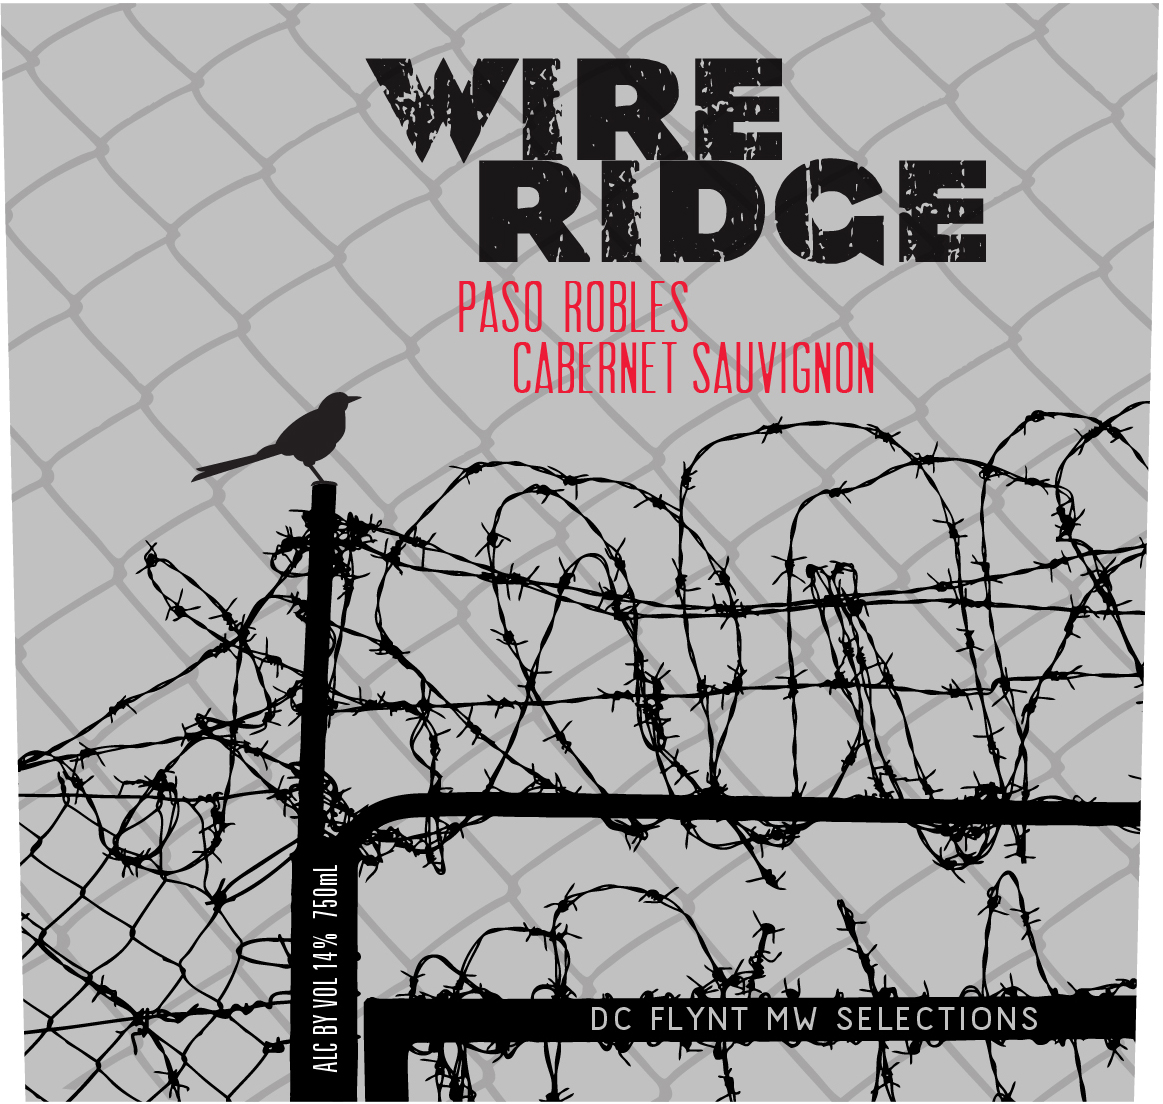 Wire Ridge Paso Robles Cabernet Sauvignon benefits from long, warm and dry growing seasons. At Wire Ridge the deep, dark, black cherry, blackberry and cassis notes of Cabernet Sauvignon develop to their fullest with more intensity and sweeter notes of cedar wood and mocha.  The tannins become riper and suppler, balanced with lush, concentrated, mouth-filling fruit.